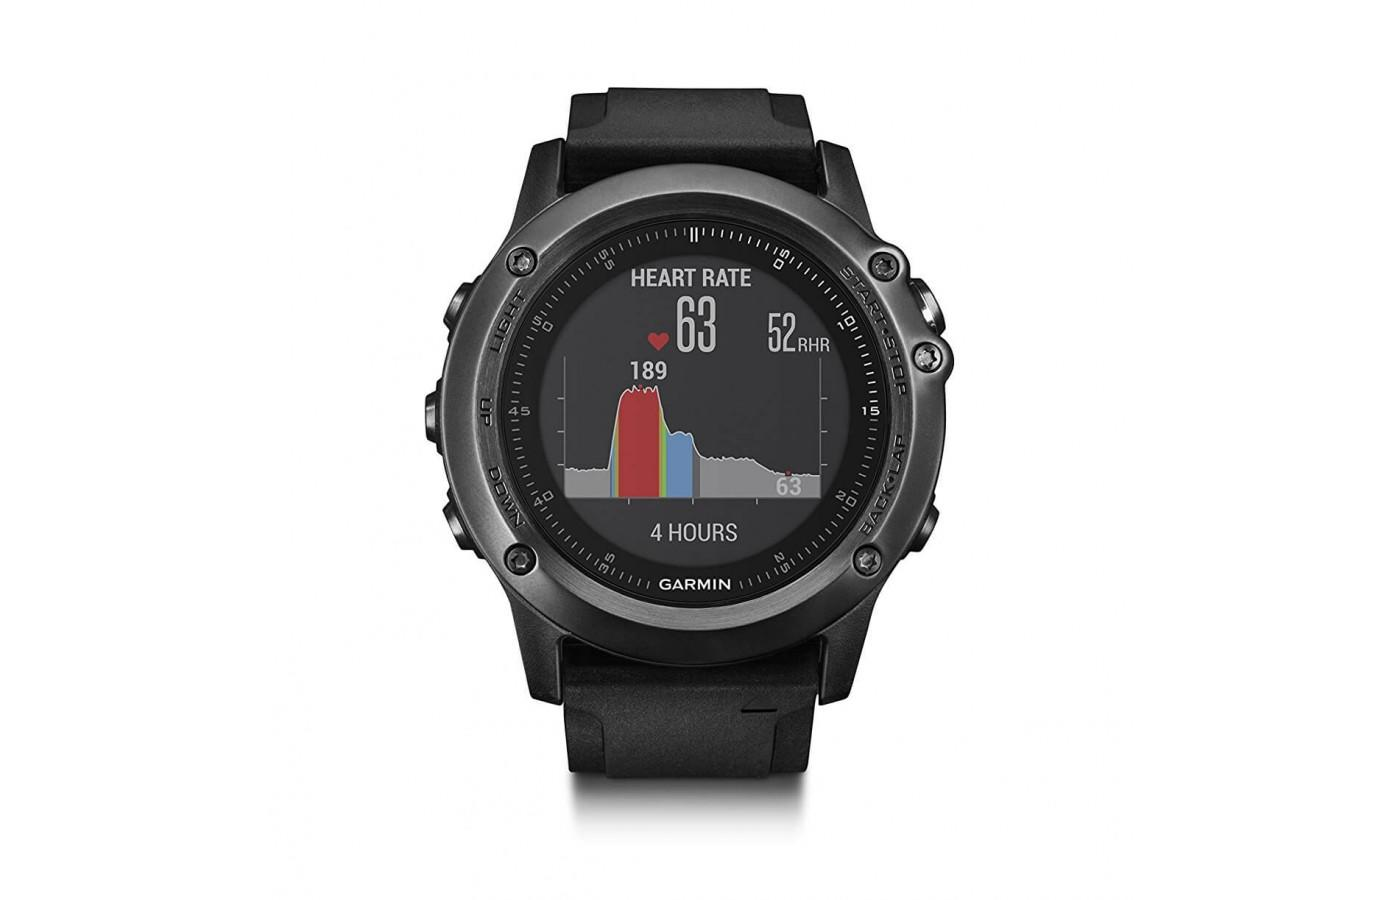 the Garmin fenix 3 HR has a full-color, easy-to-read, hi-res face